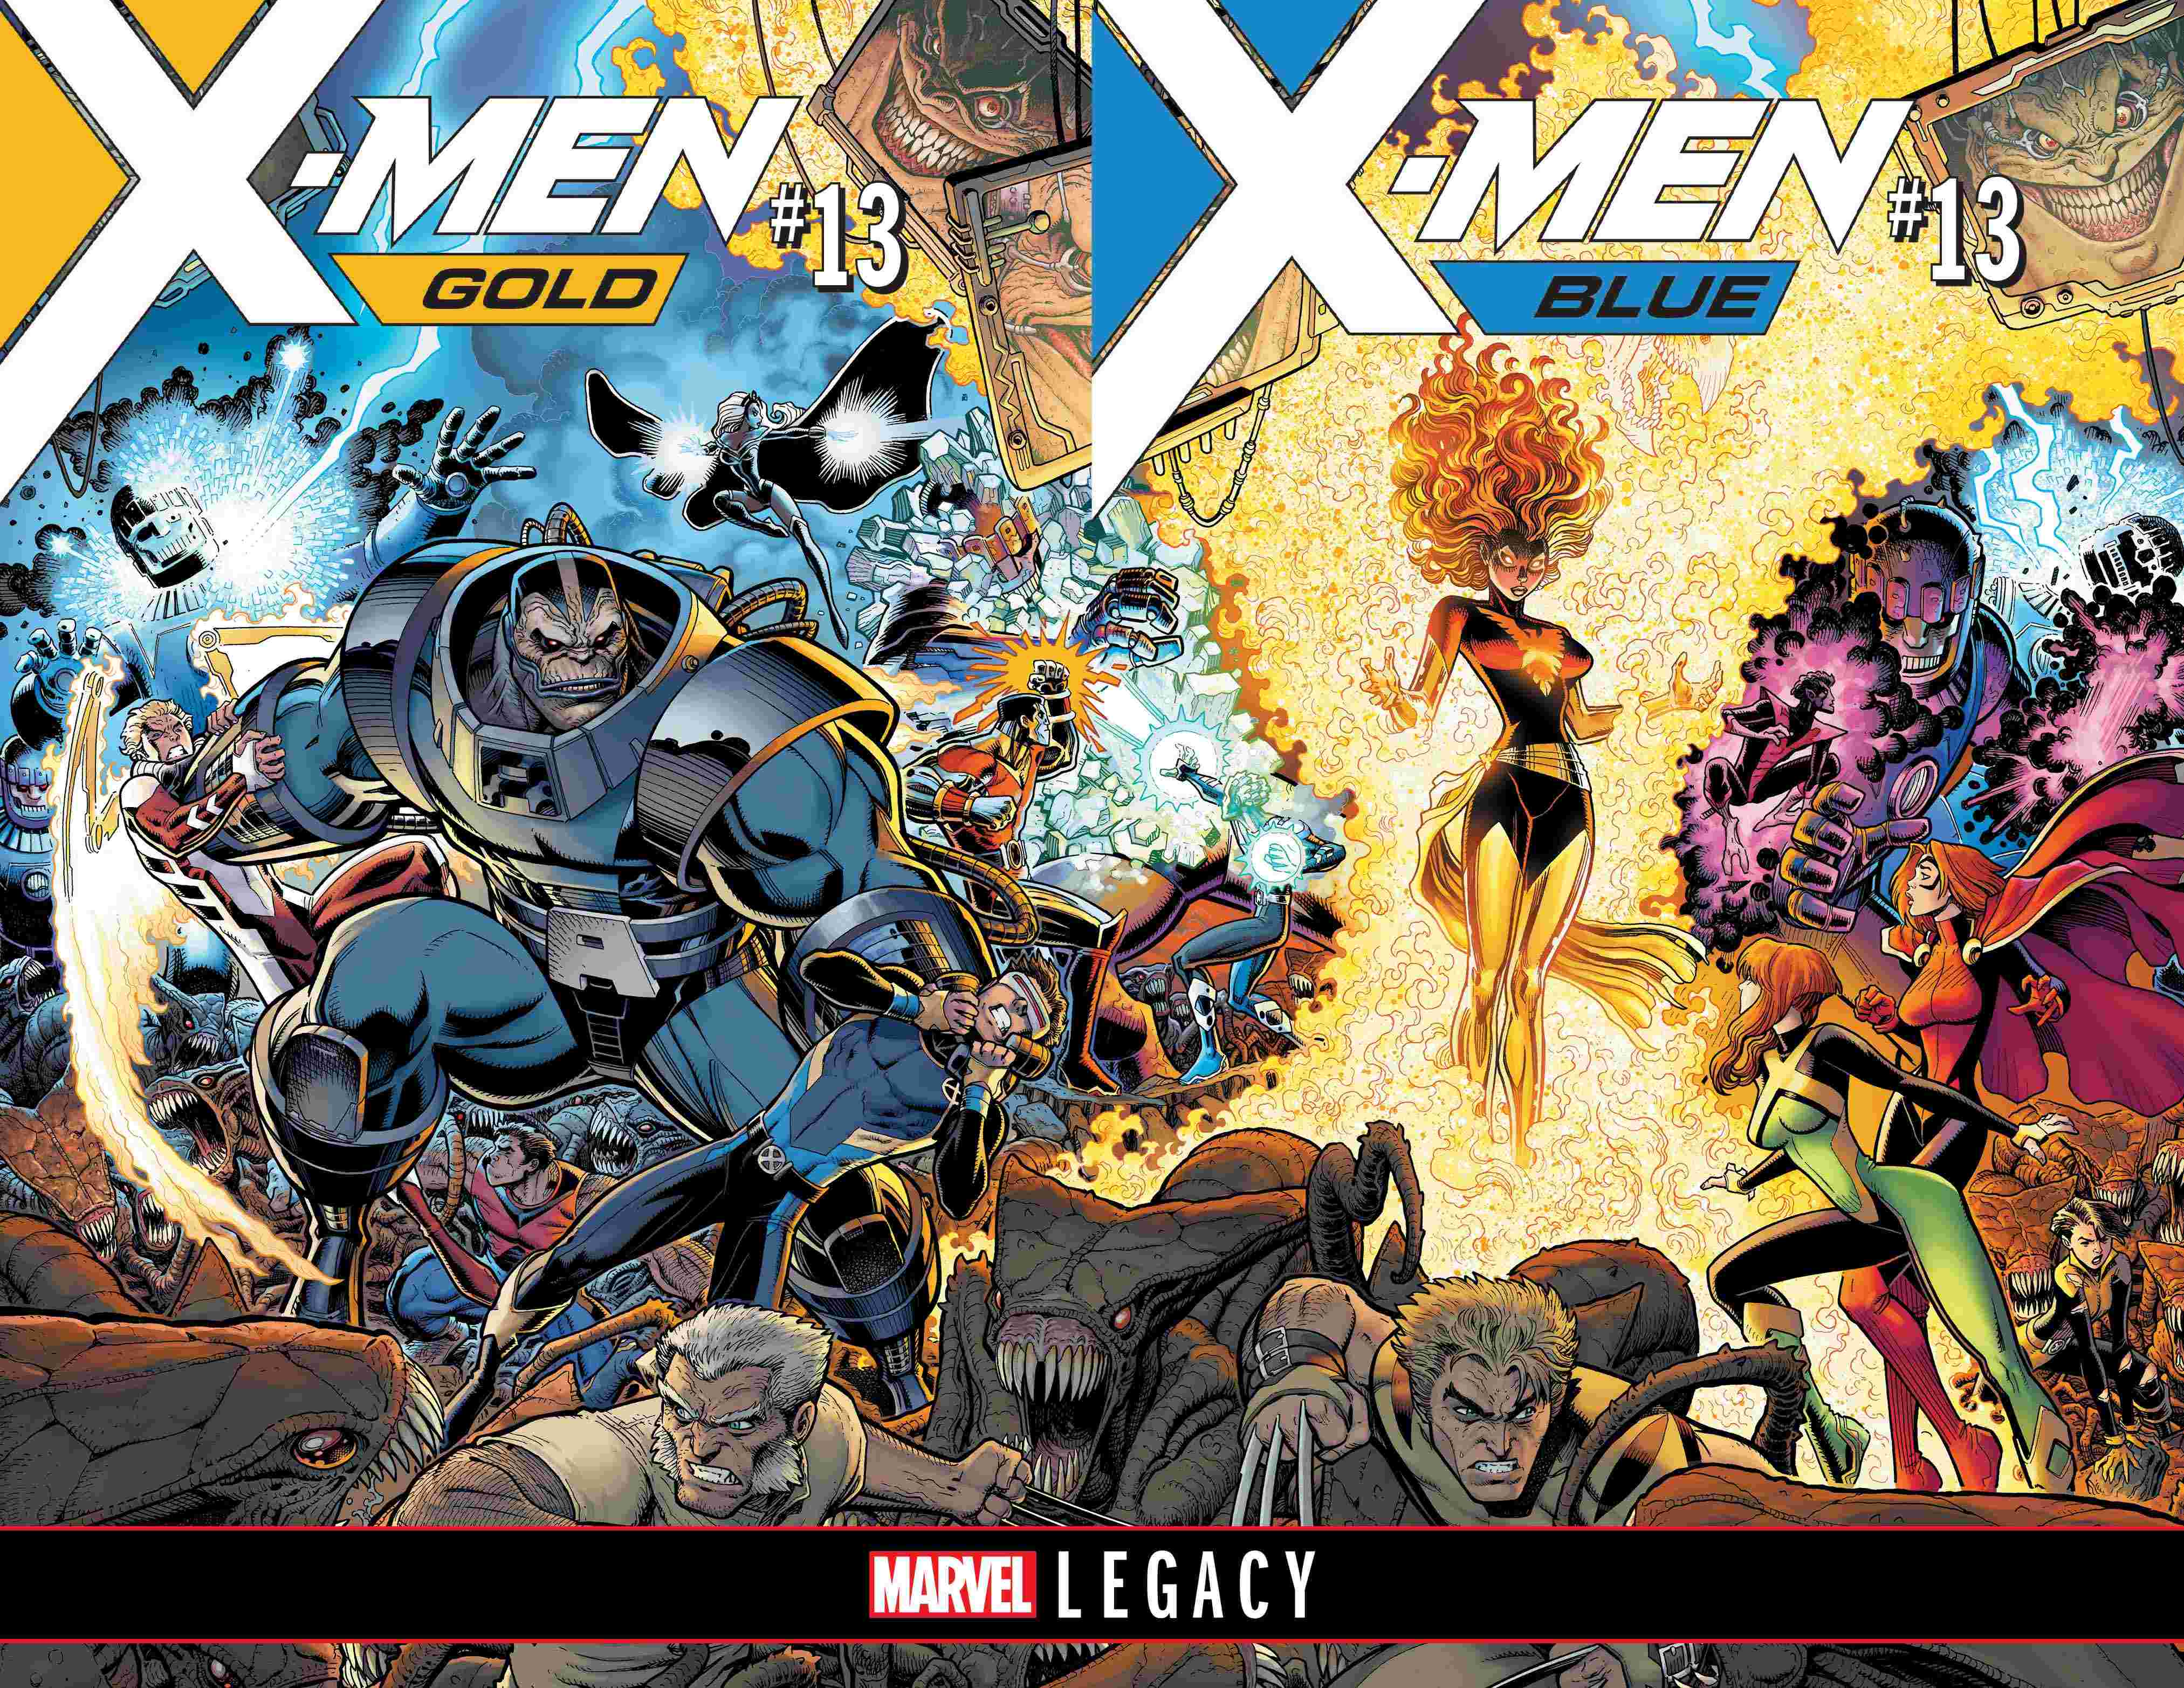 Marvel Spoils Return Of A Major Character Ahead Of Legacy's Release